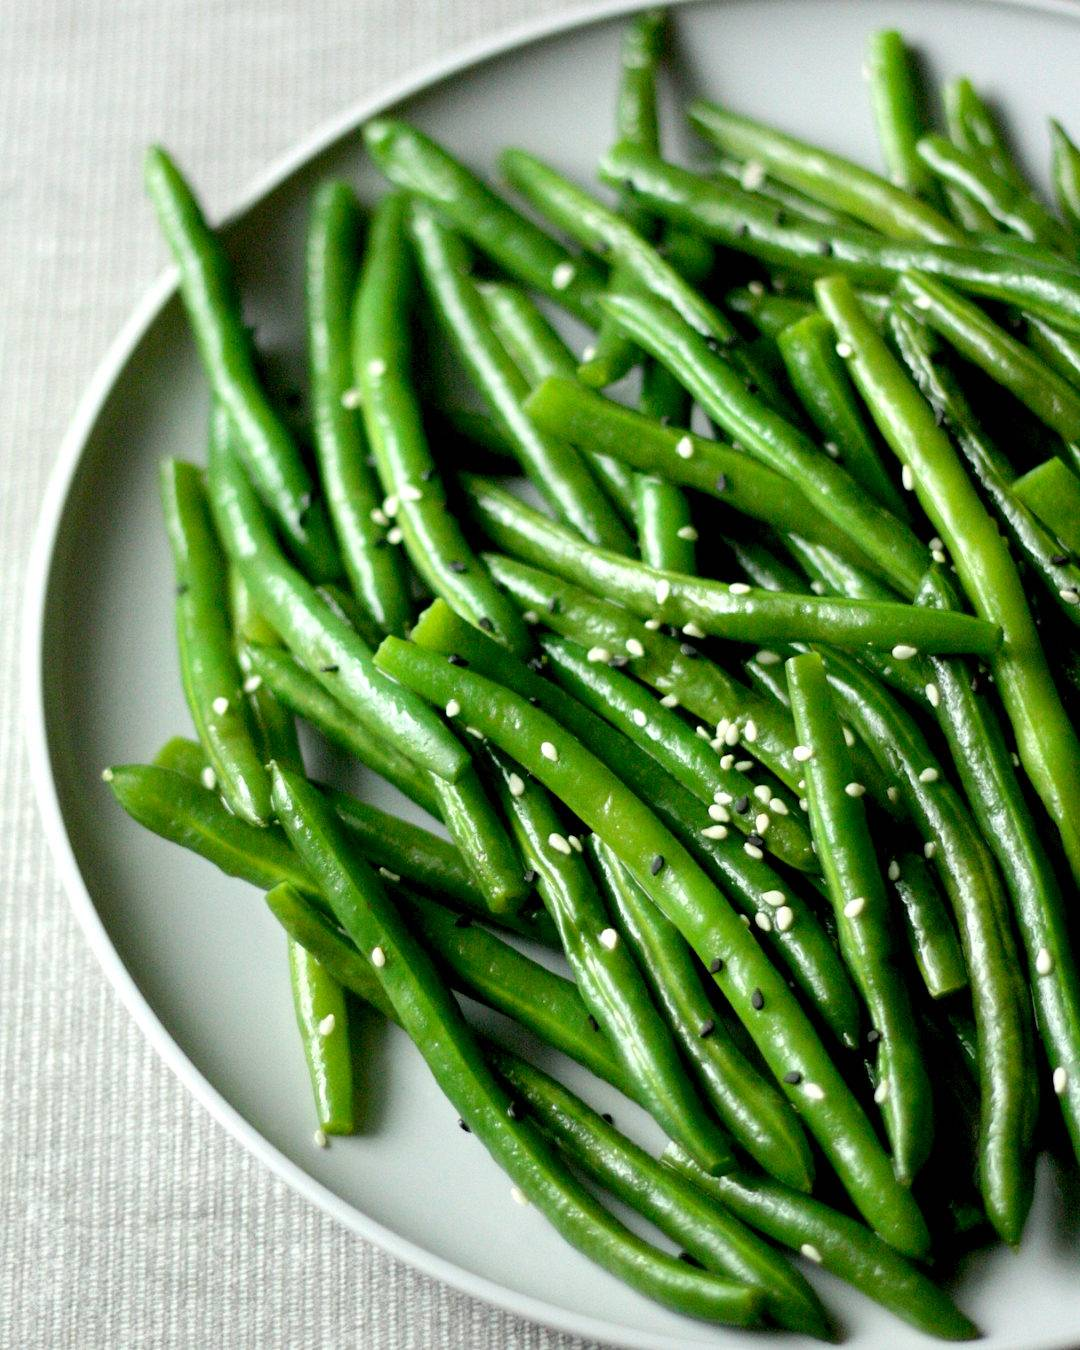 How to Steam Green Beans in Microwave